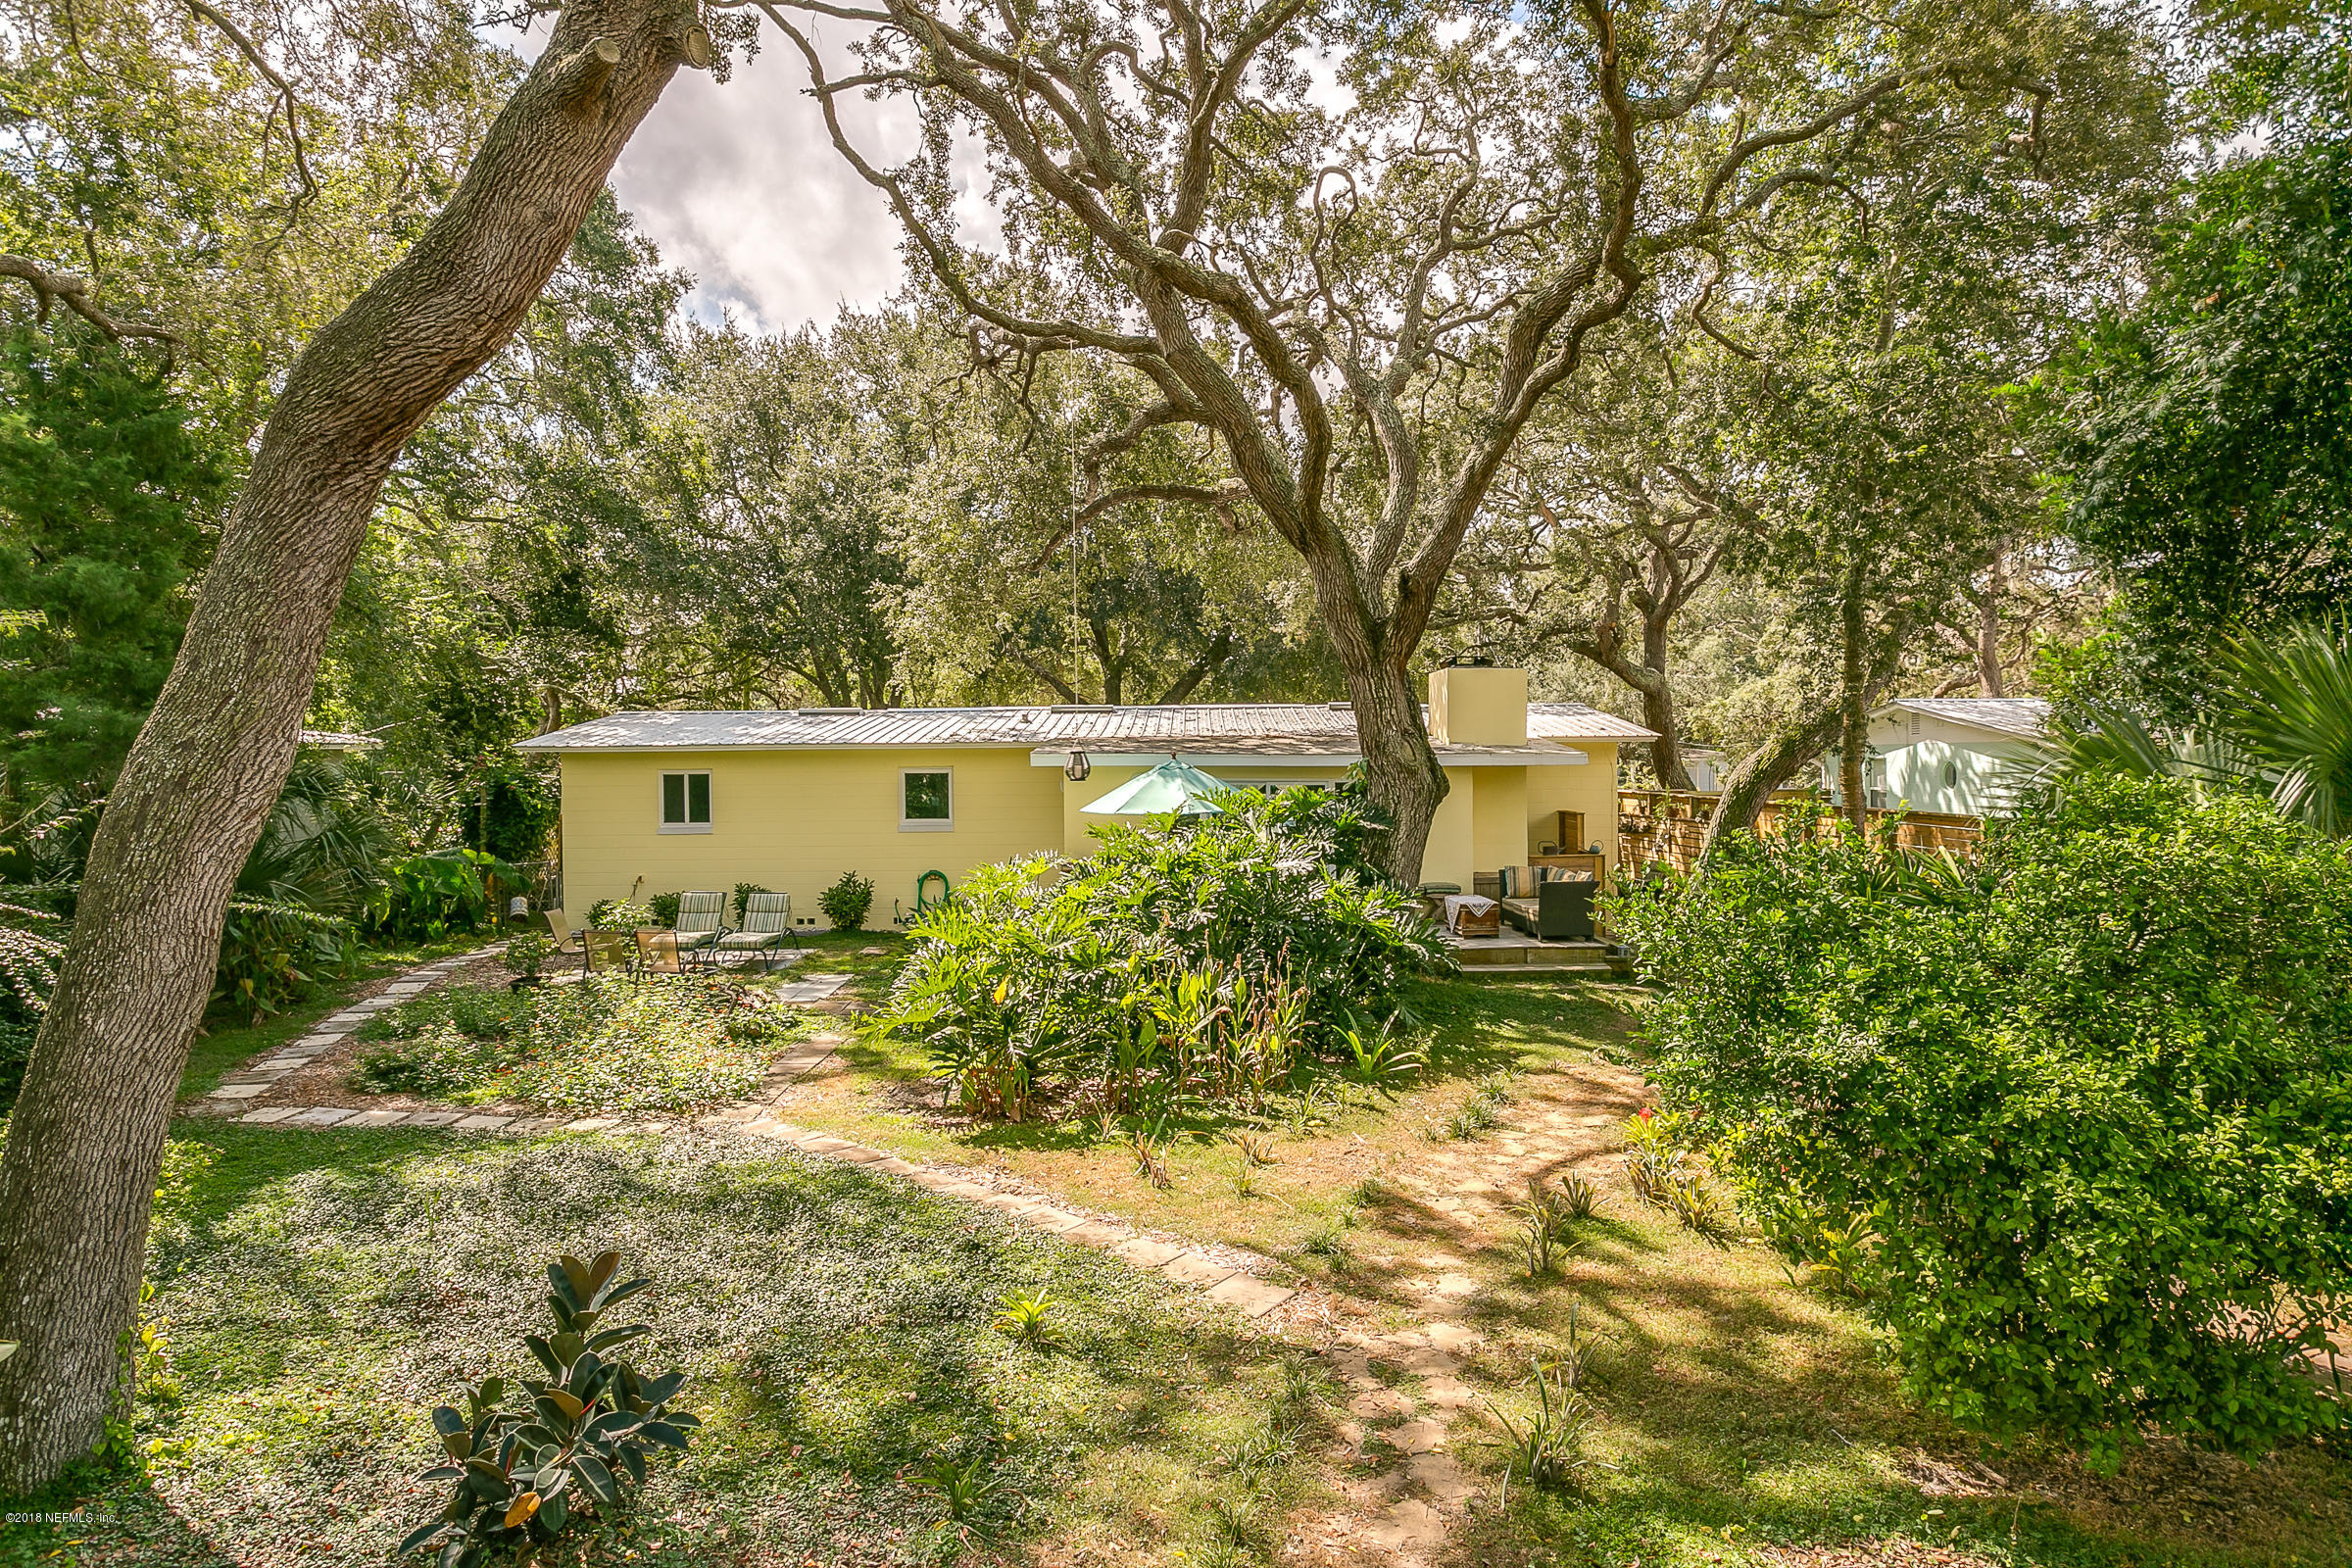 11 MADEIRA, ST AUGUSTINE, FLORIDA 32080, 4 Bedrooms Bedrooms, ,4 BathroomsBathrooms,Residential - single family,For sale,MADEIRA,959190